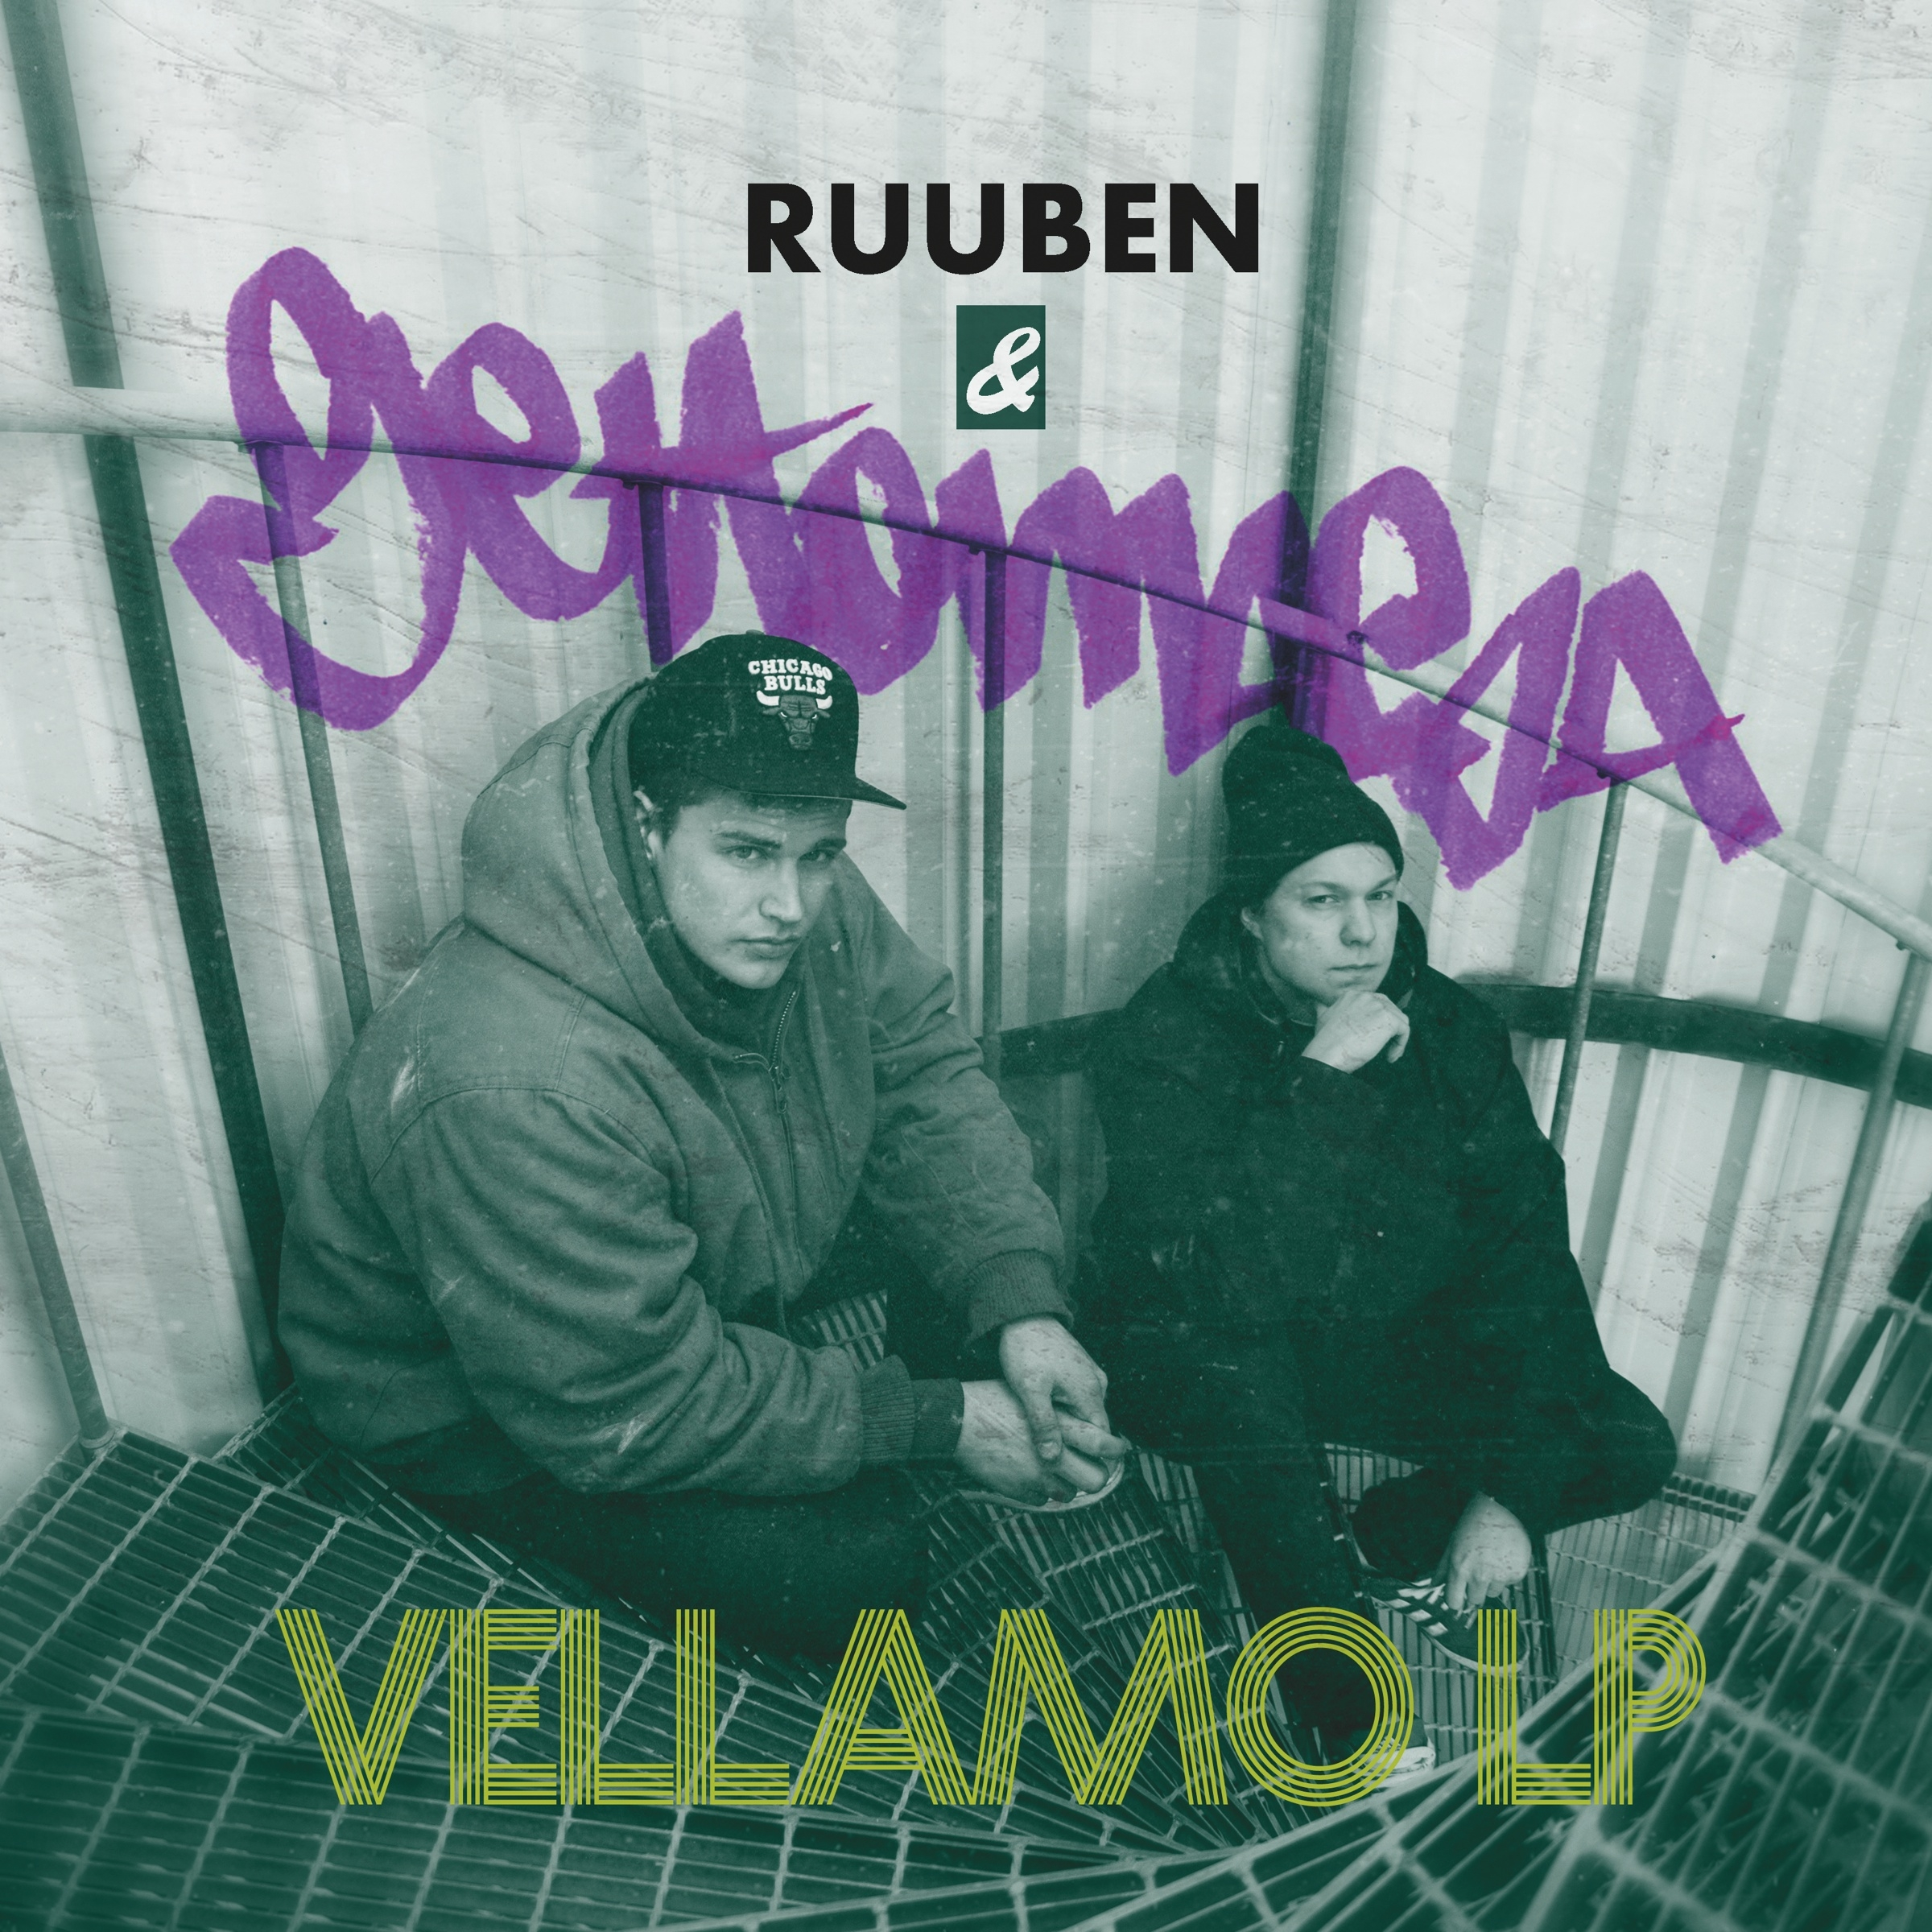 Gettomasa_&_Ruuben_-_Vellamo_LP_artwork